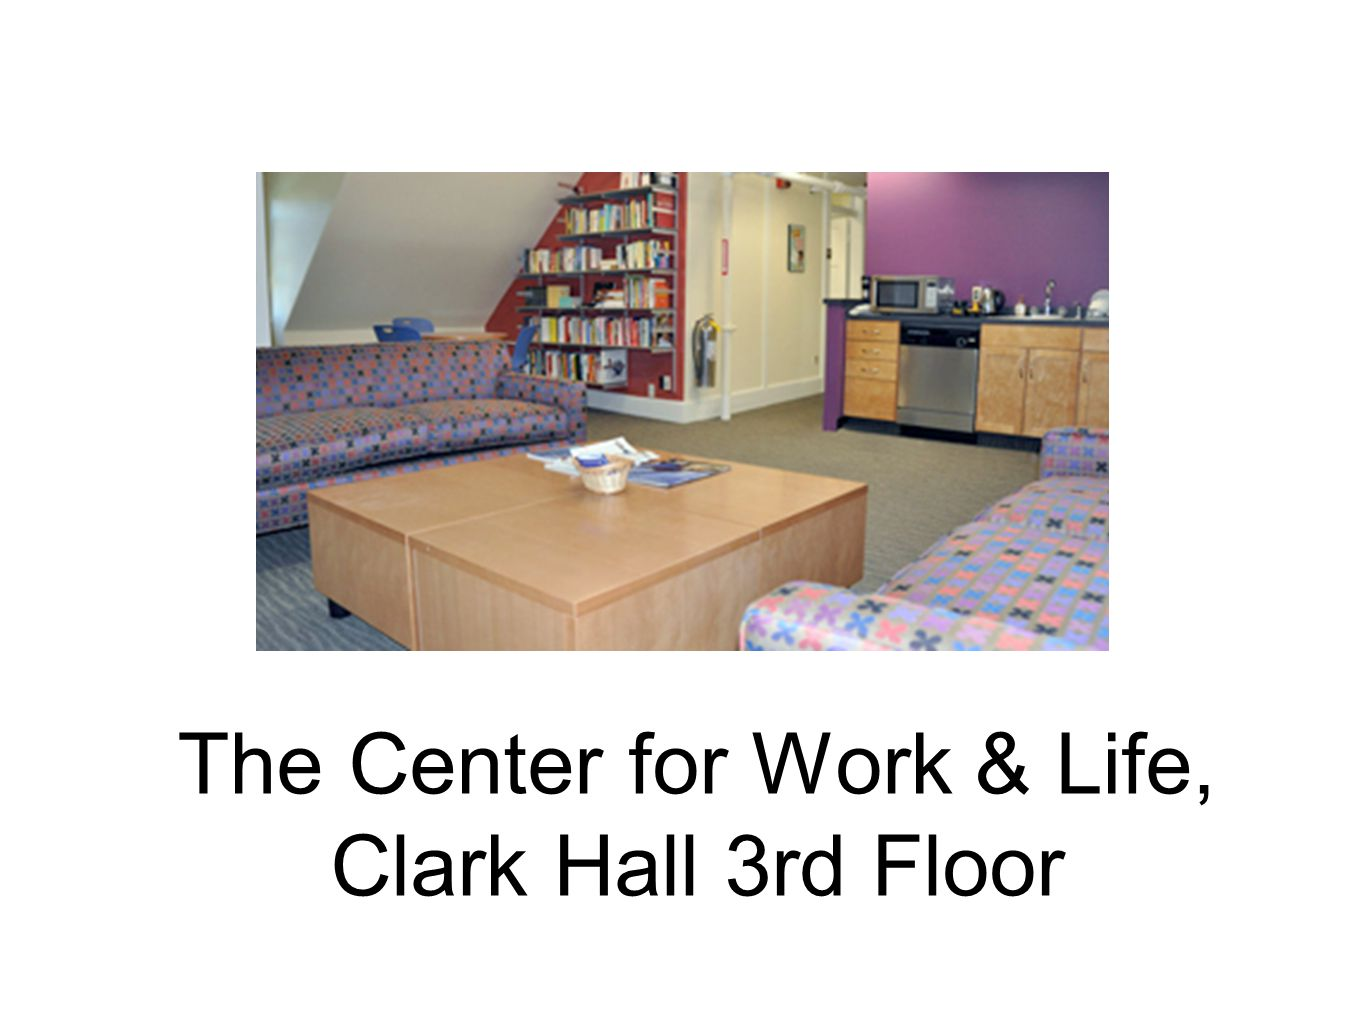 The Center for Work & Life, Clark Hall 3rd Floor